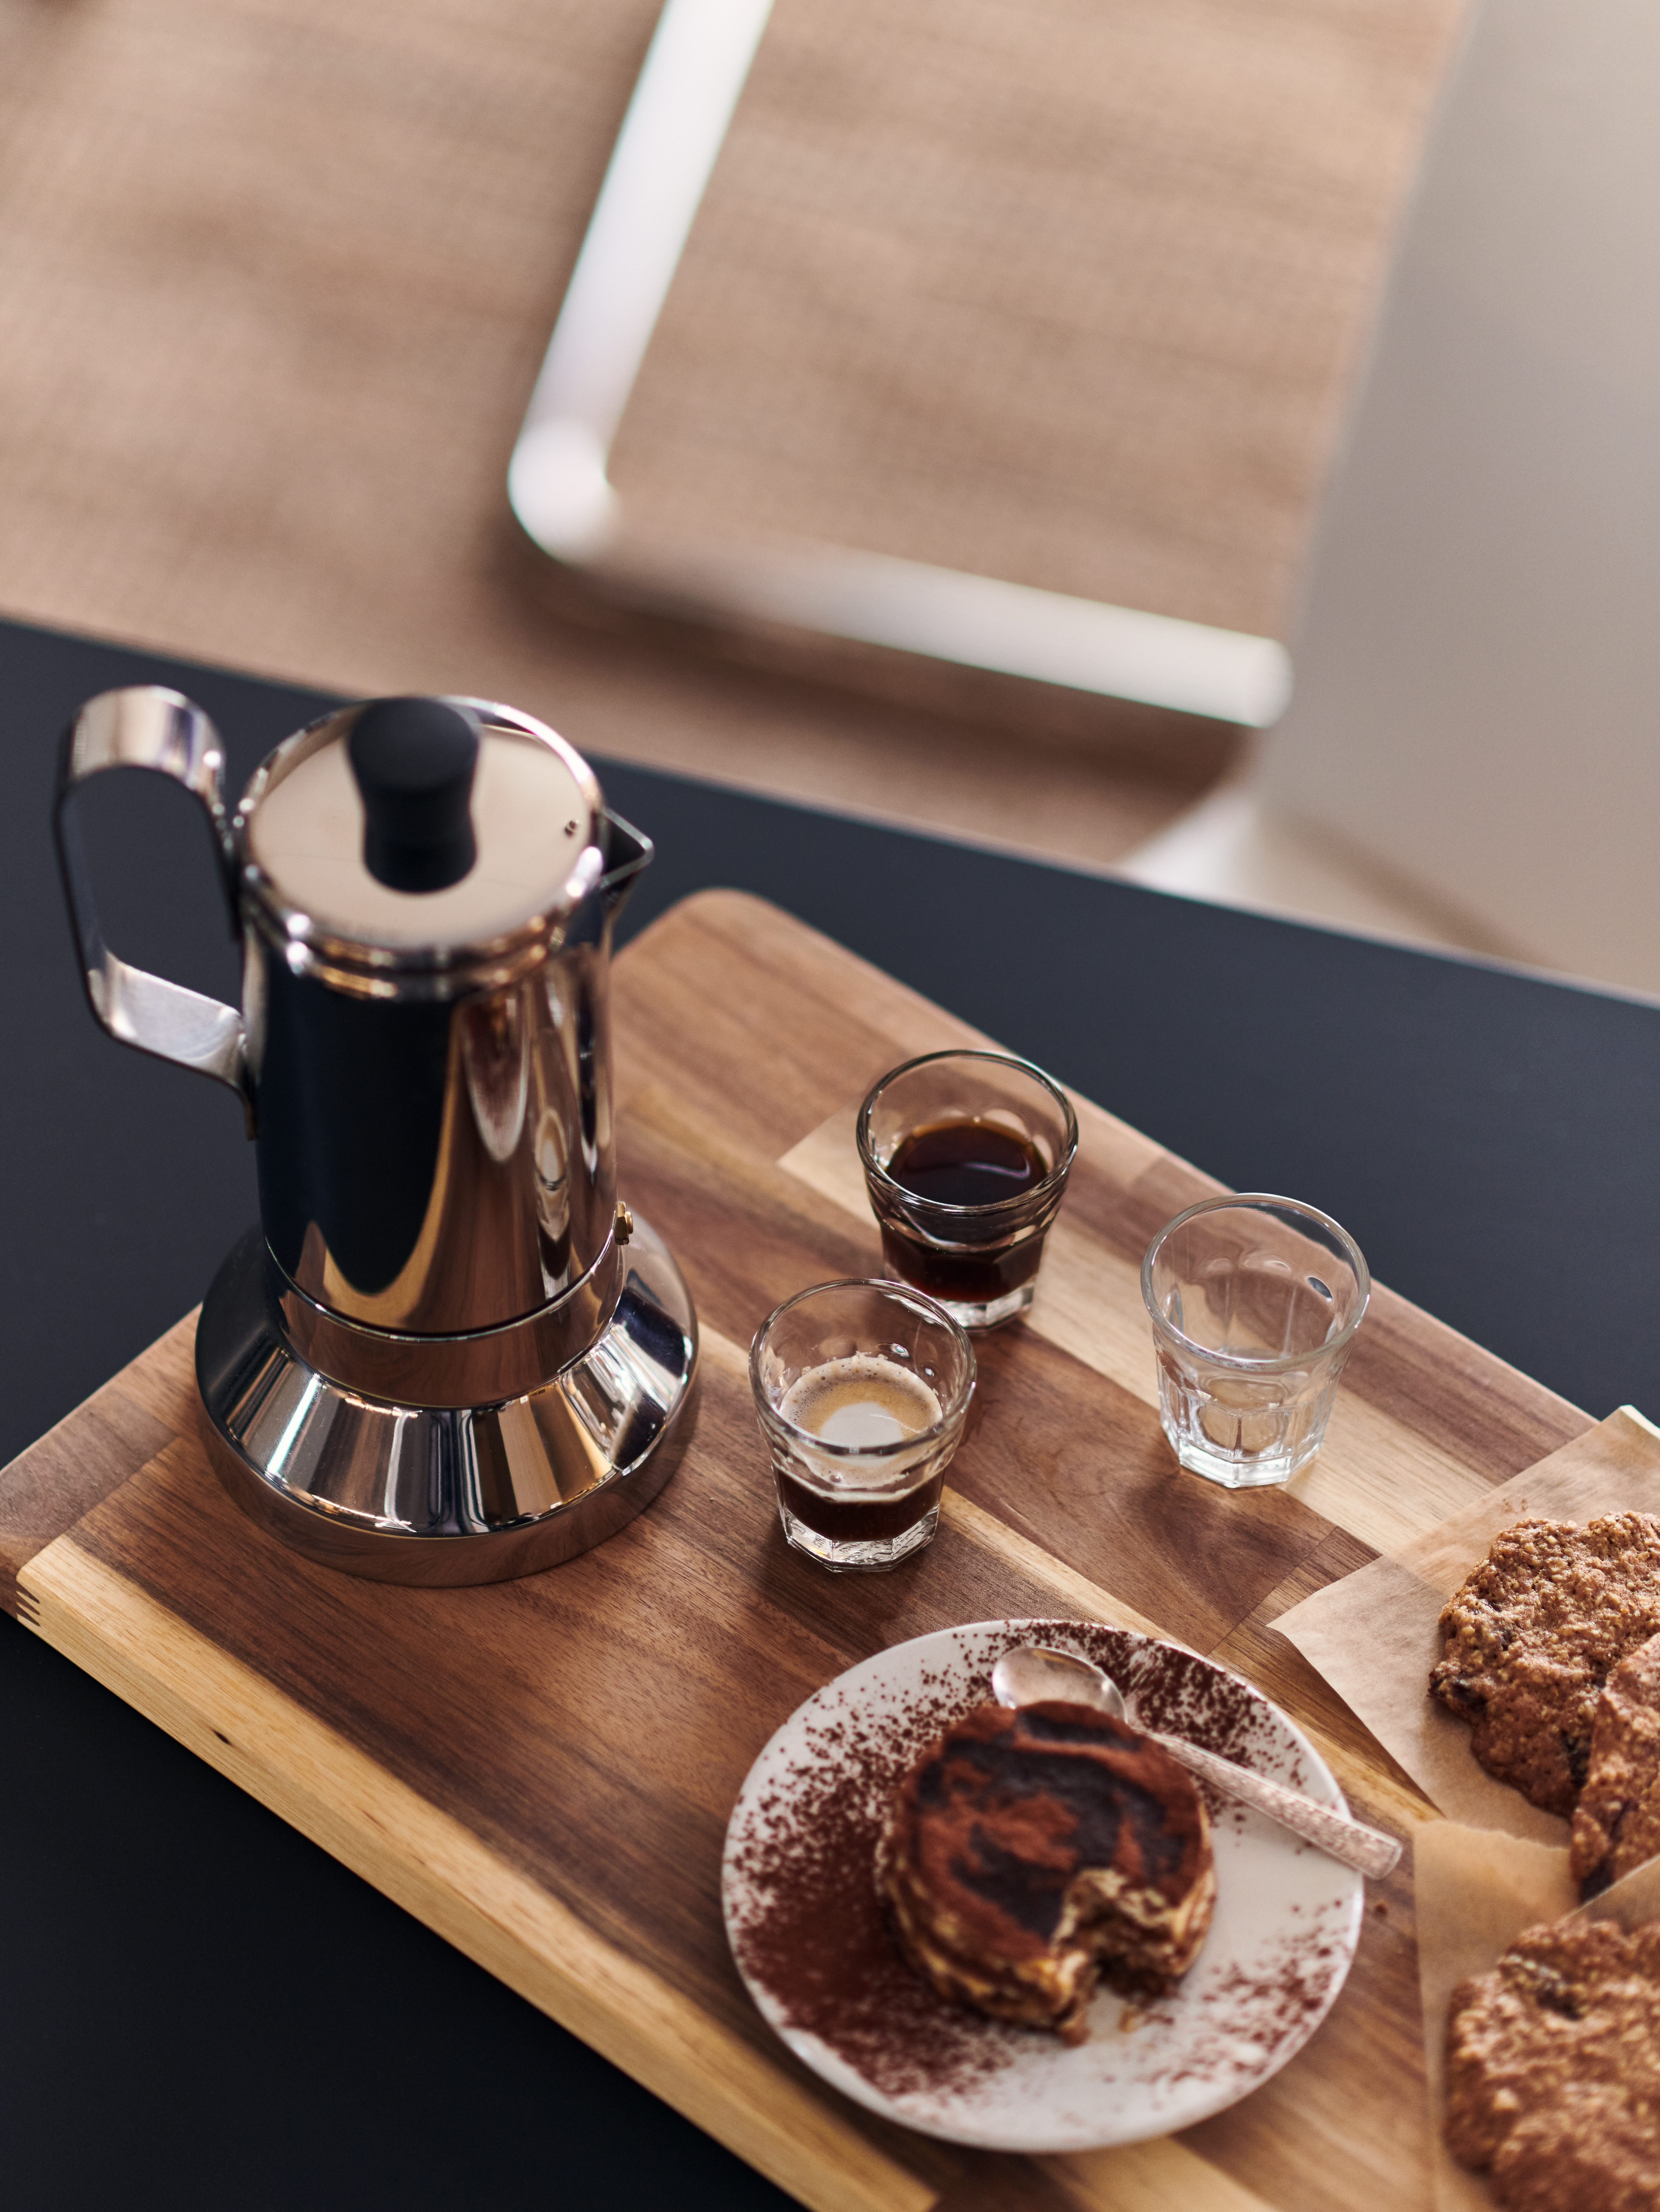 A METALLISK espresso maker, POKAL glasses, a cake and biscuits are on a SMÅÄTA chopping board on a kitchen countertop.